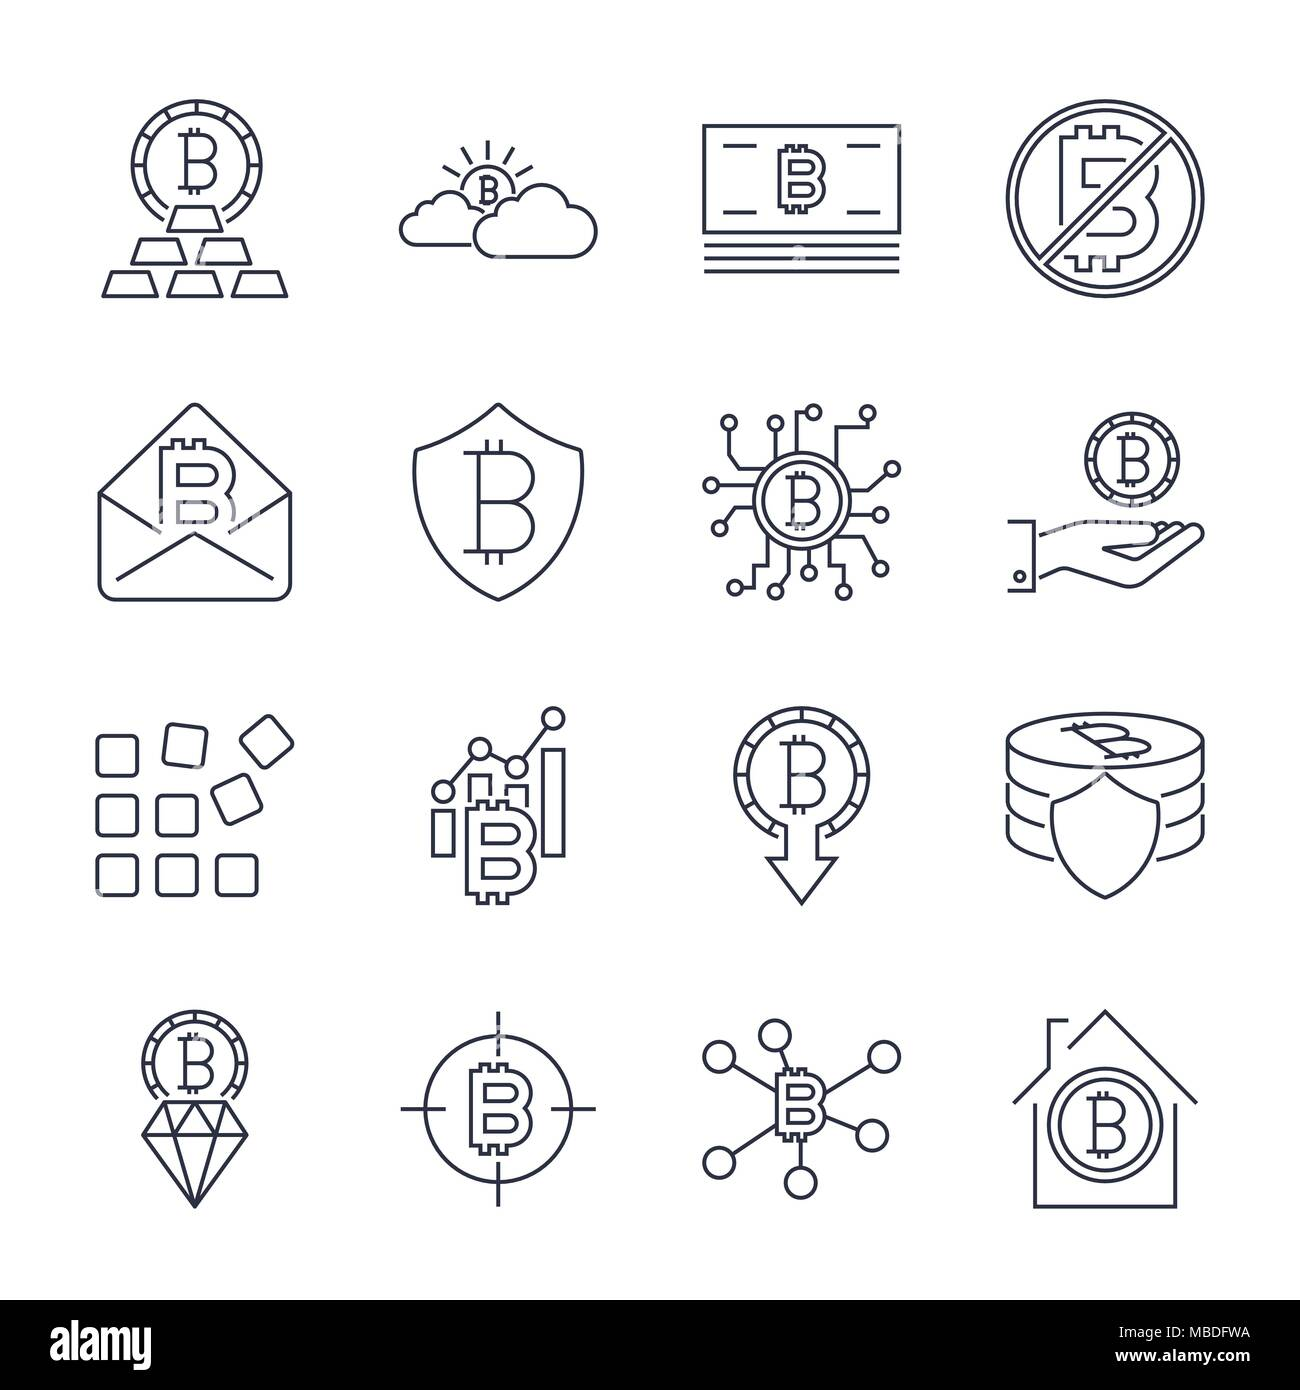 Bitcoin different icons set for internet money crypto currency symbol and coin image for using in web, apps, programs and other. Editable Stroke - Stock Image